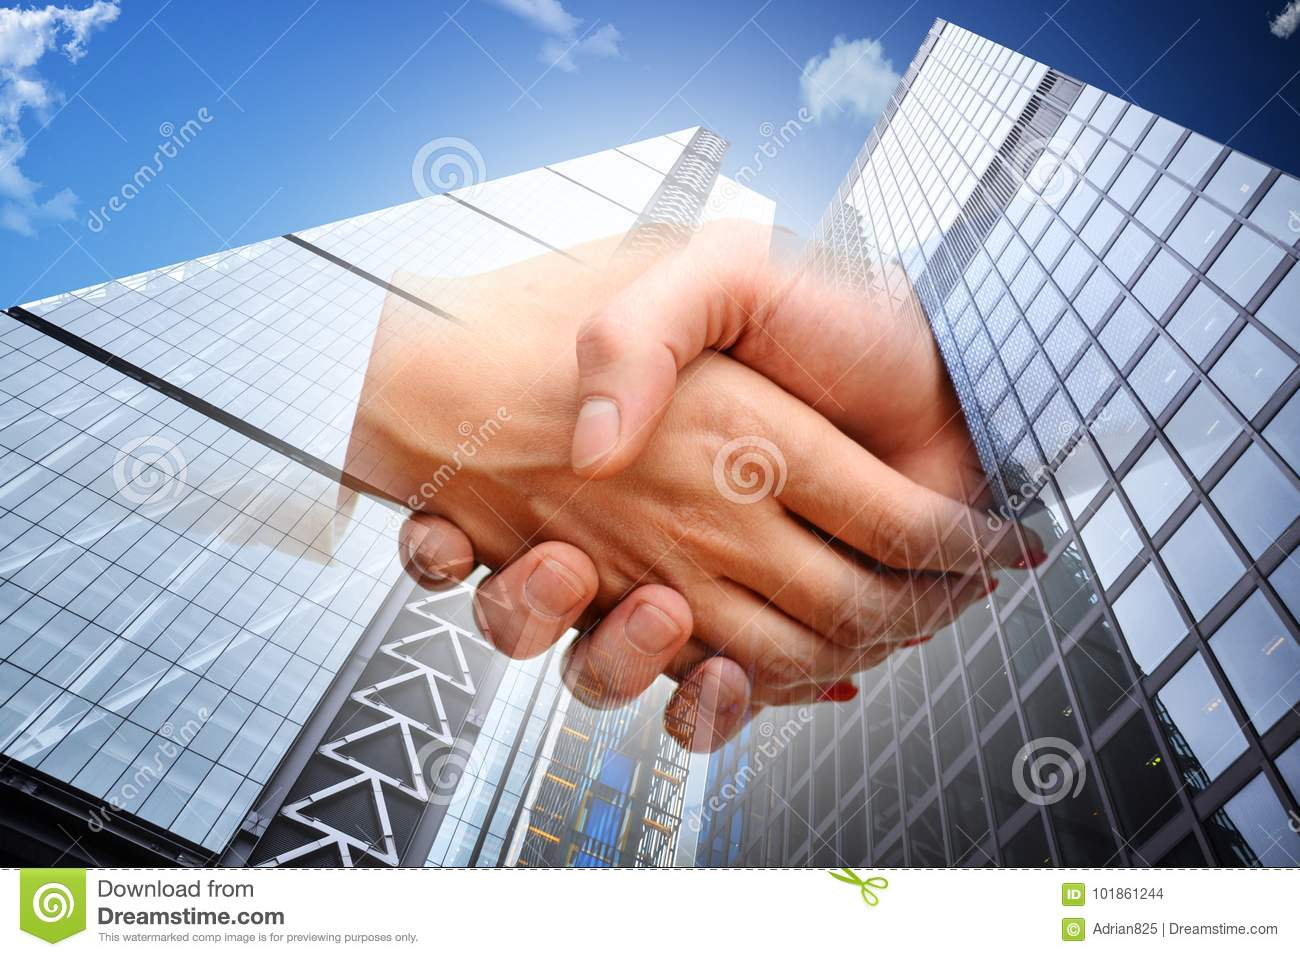 Real Estate Transaction : Real estate transaction stock photos royalty free images